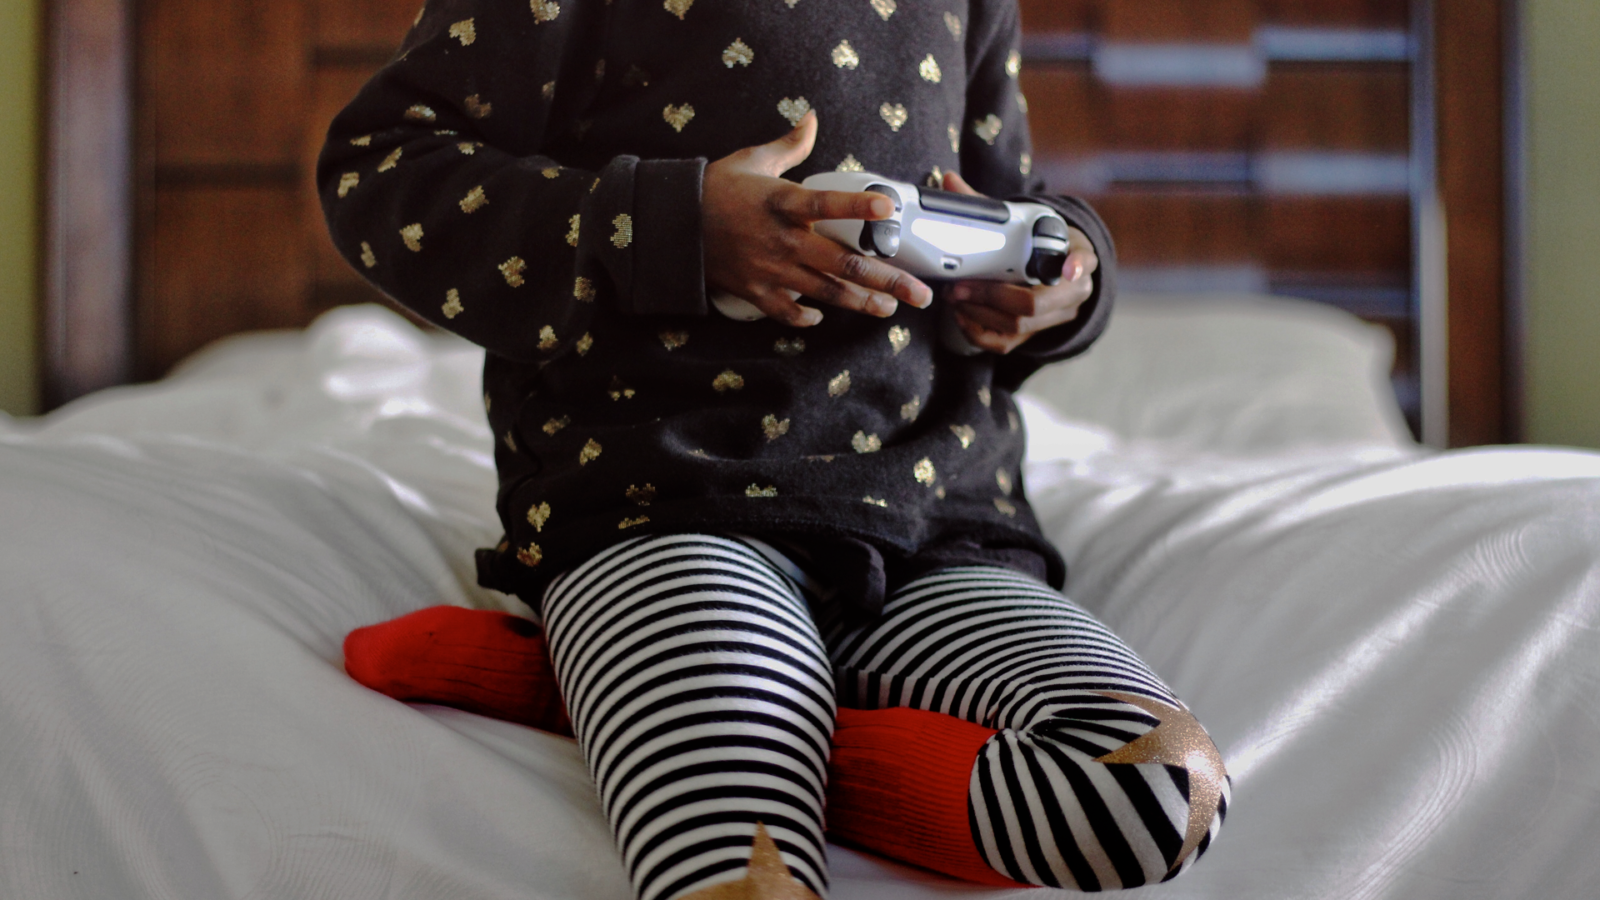 Online gaming safety helps to create positive online experiences for children